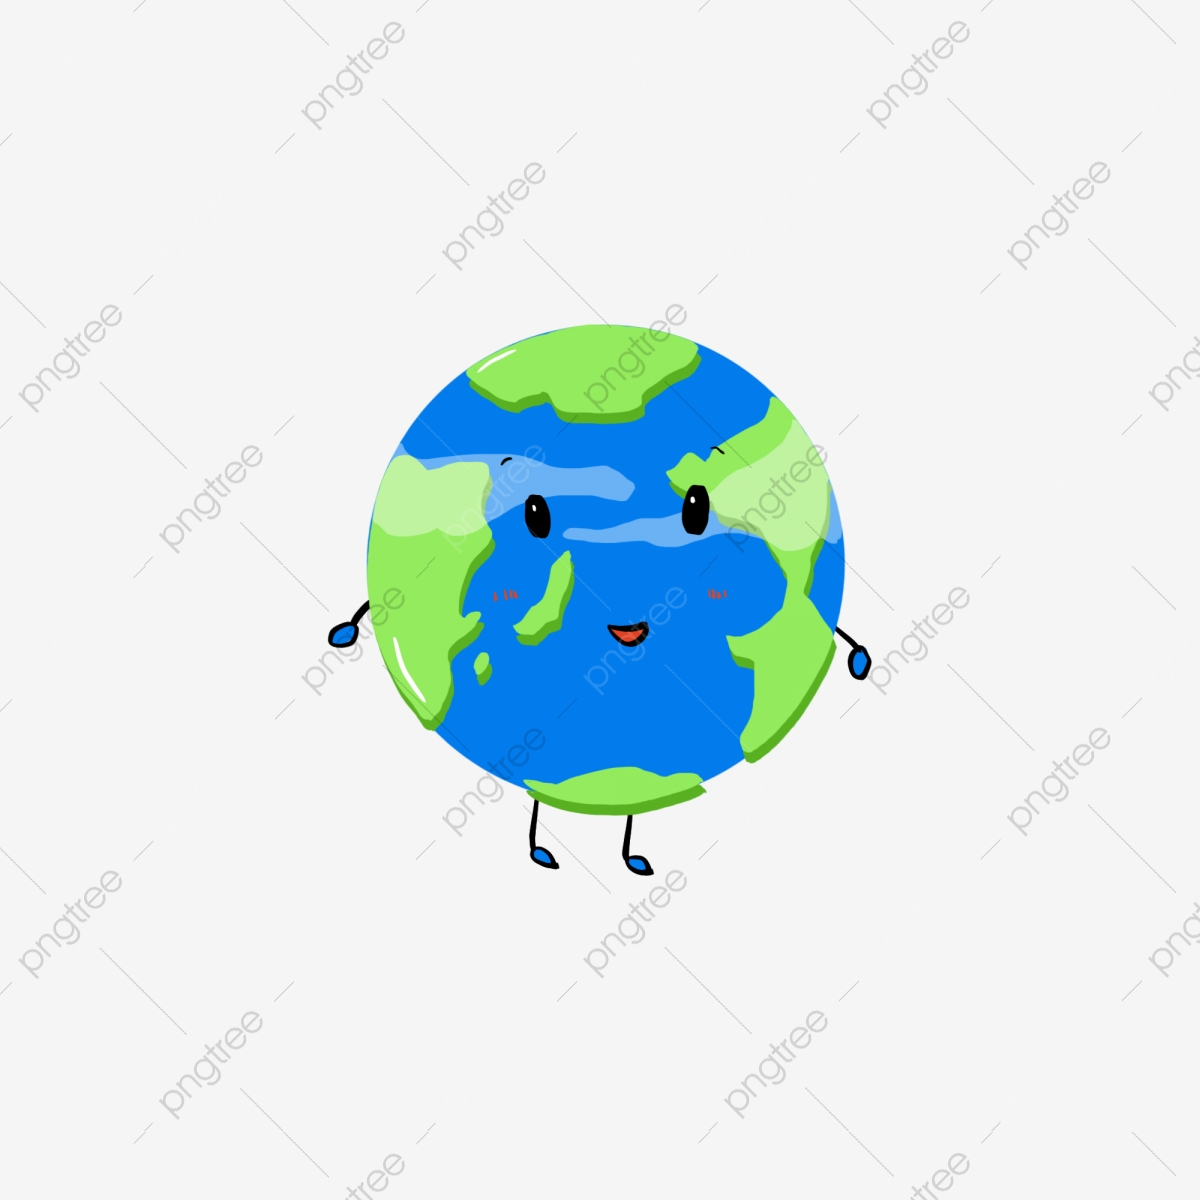 Hand Drawn Cartoon Cute Earth Hand Drawn Cartoon Earth Png Transparent Clipart Image And Psd File For Free Download